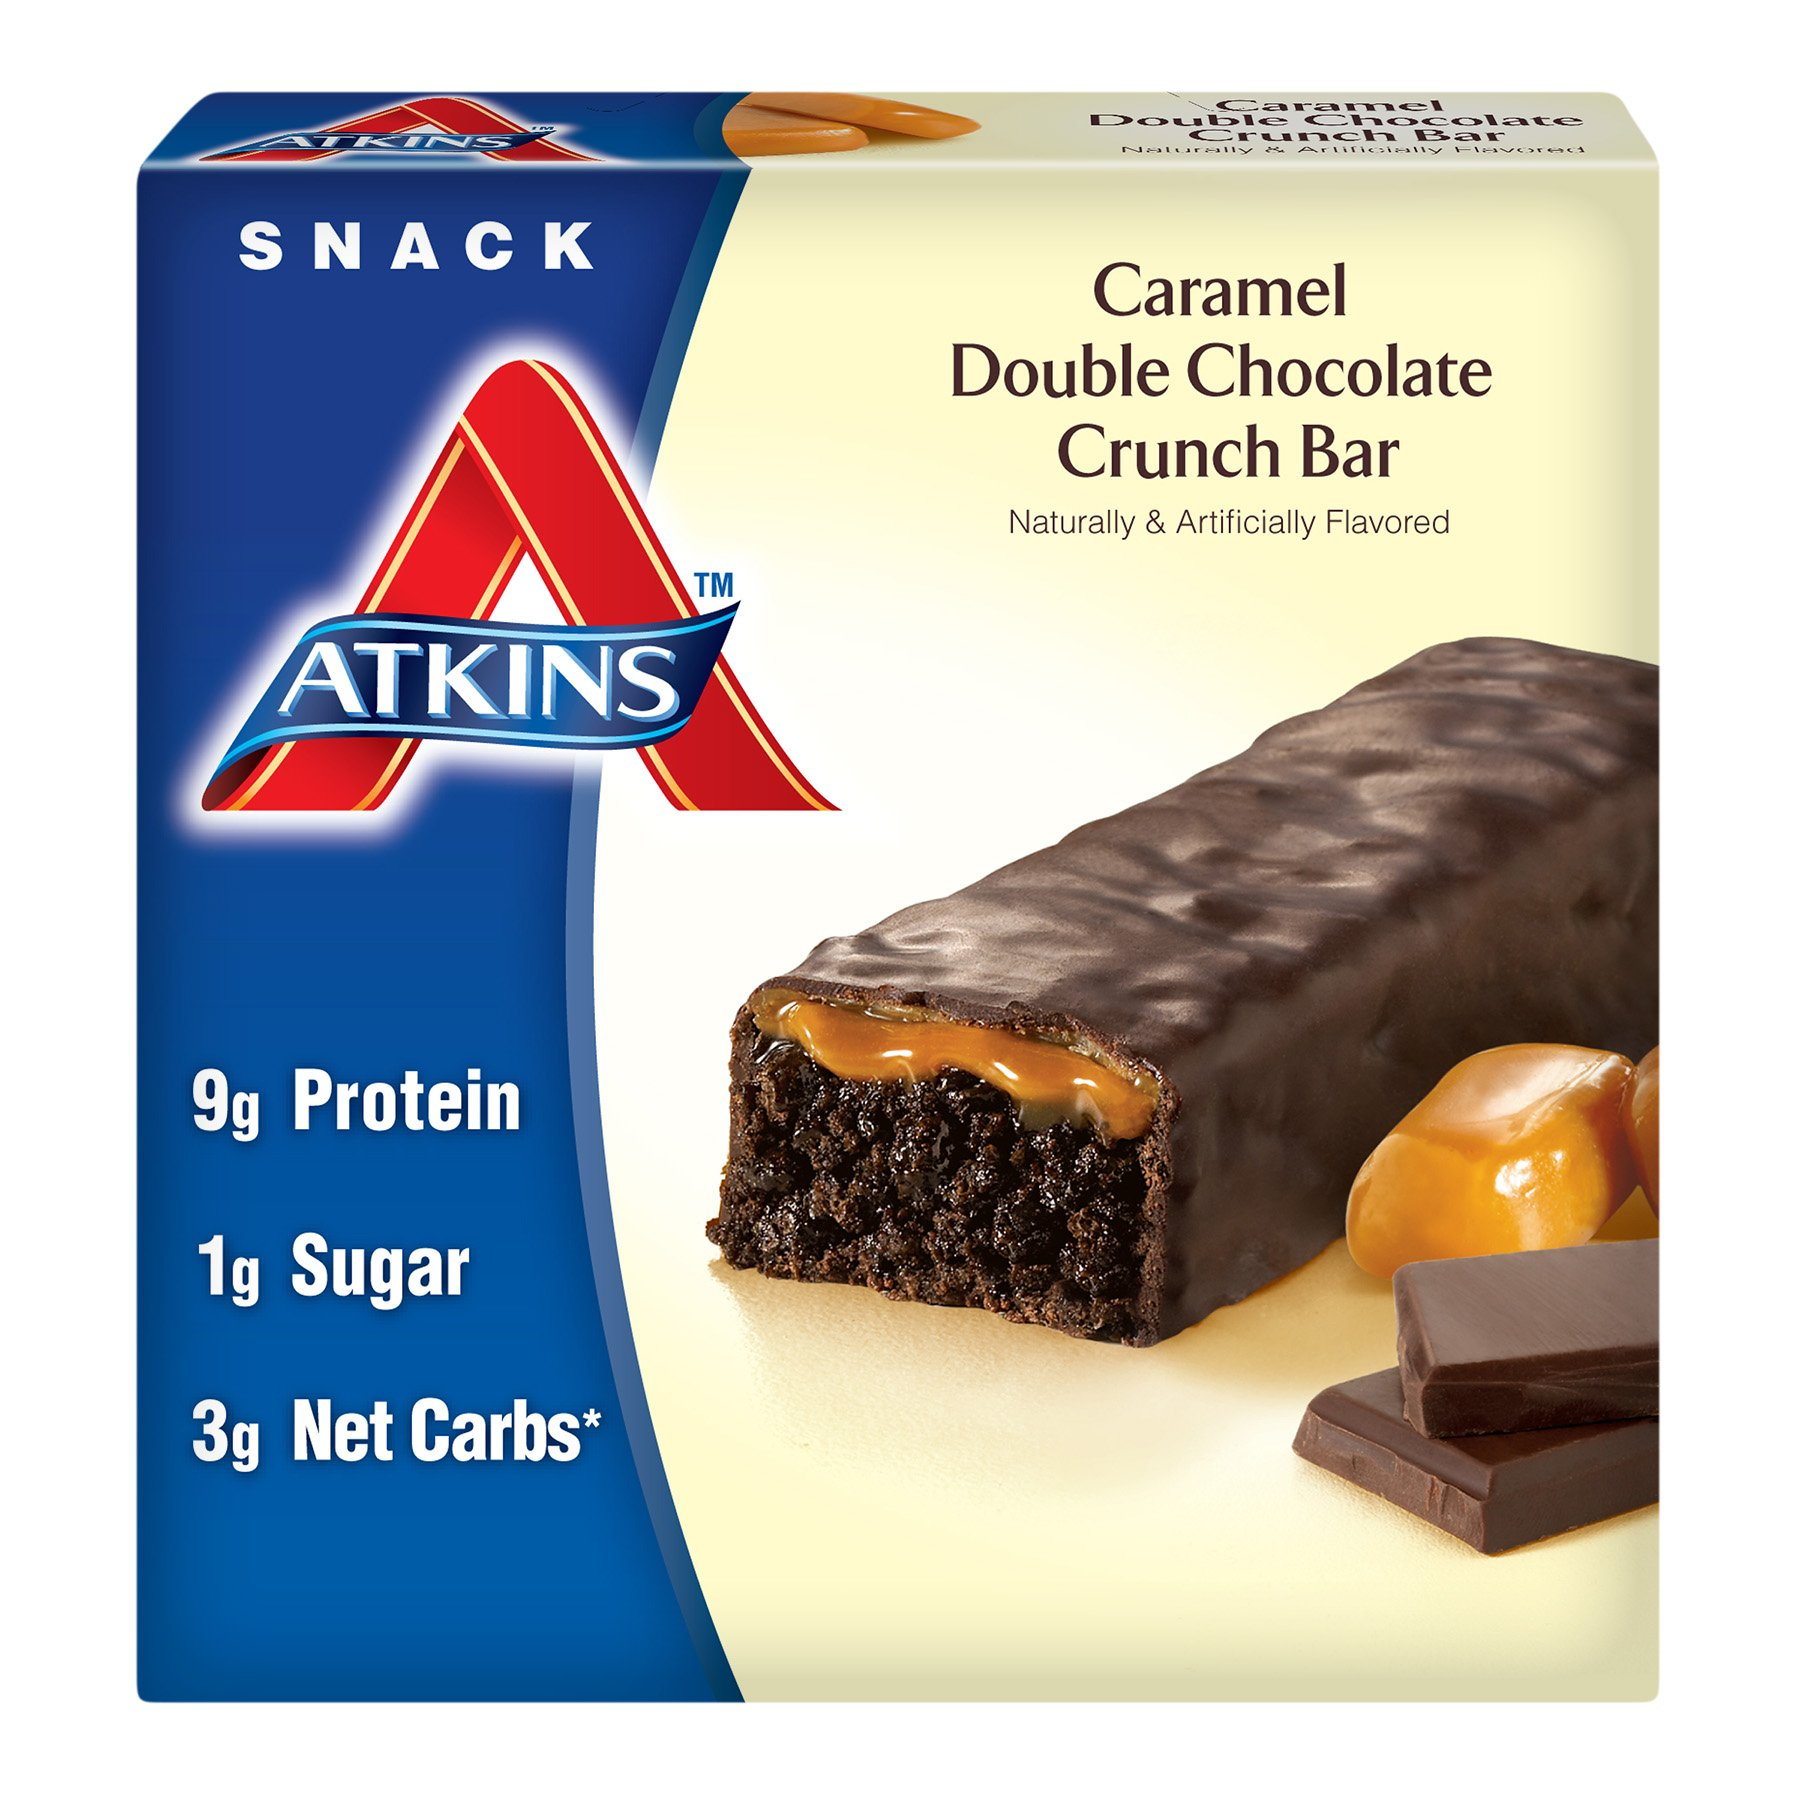 Atkins Advantage Caramel Bars, Double Chocolate Crunch, 5-Count, 1.6-Ounce Bars (Pack of 3) by Atkins